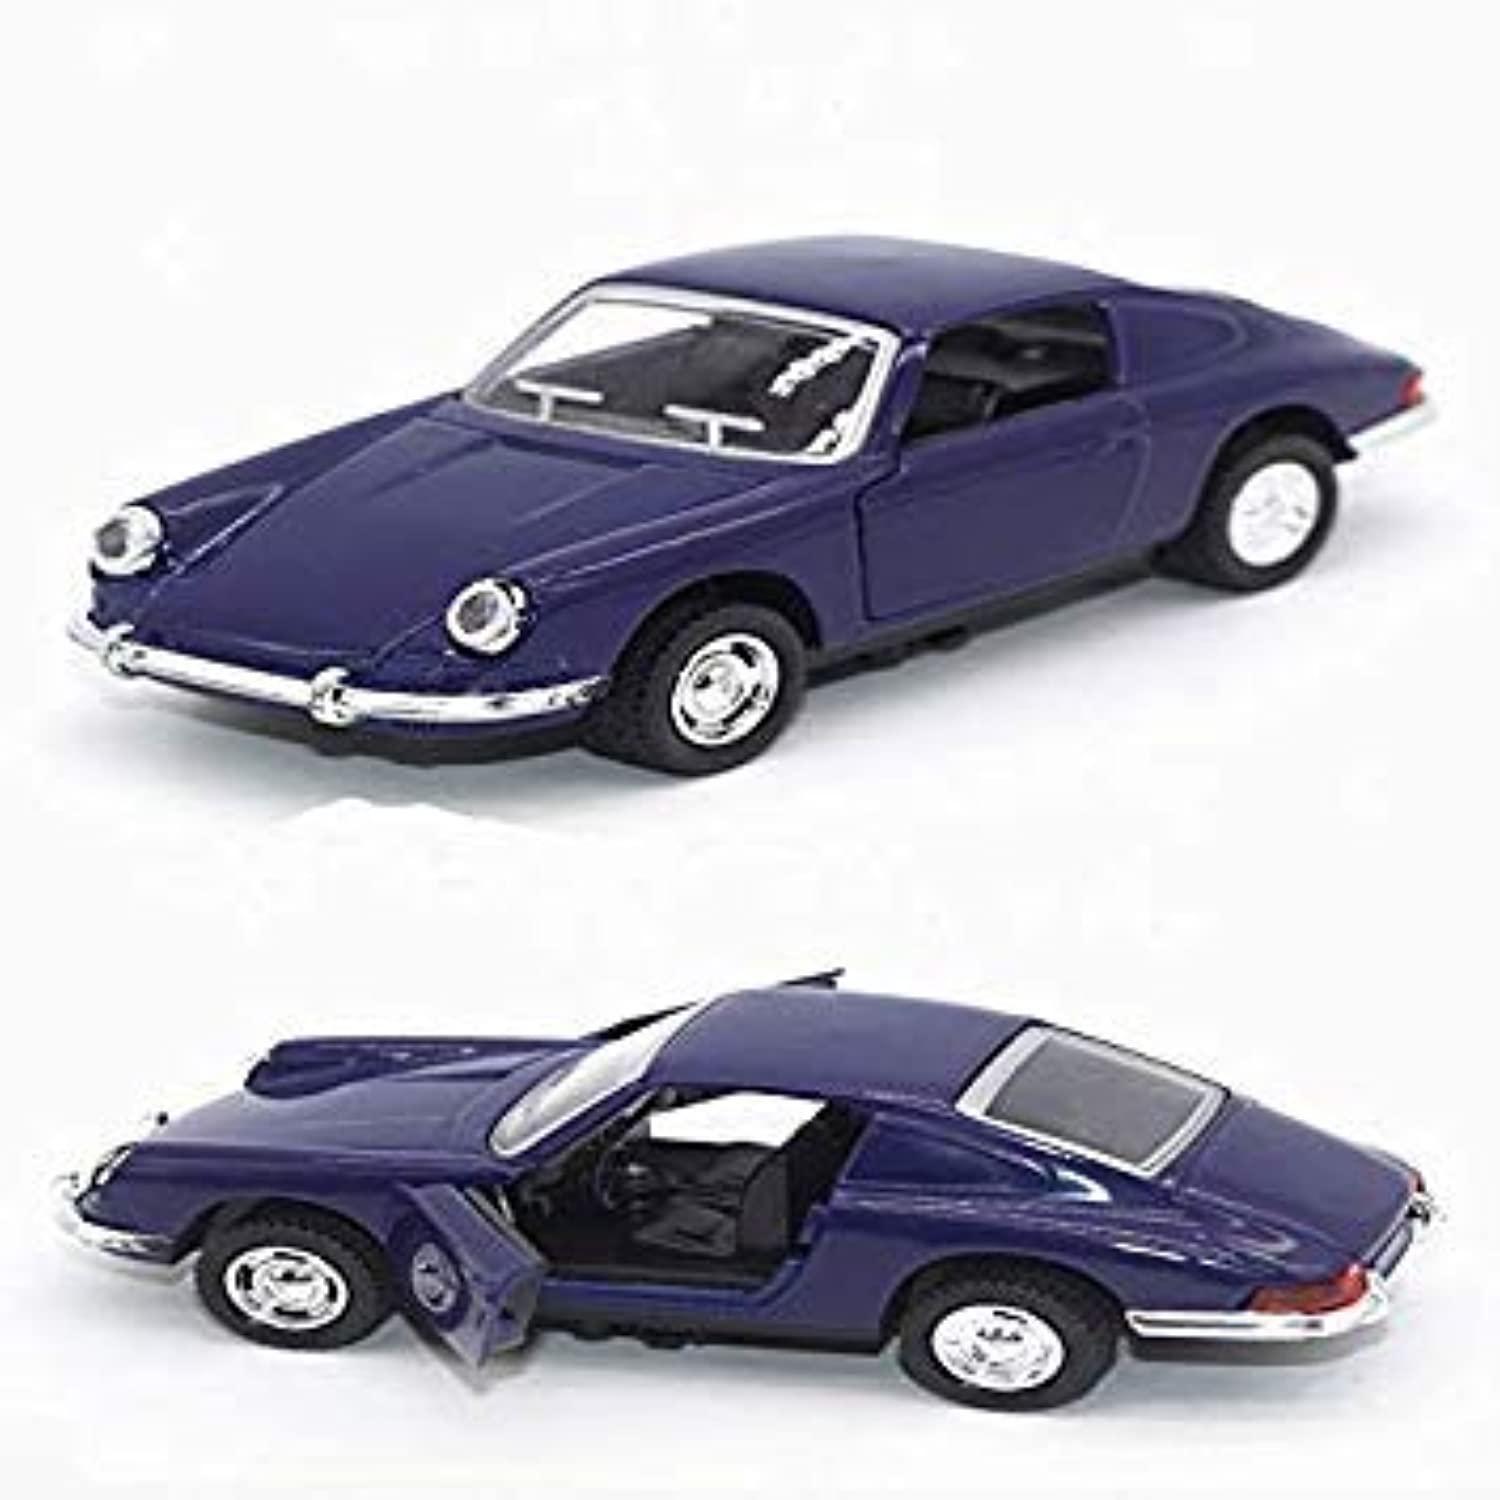 1 34 Classic Simulation 1963 911 Toy Classic Car color Collection Toy Pull Back Sound and Light Model bluee